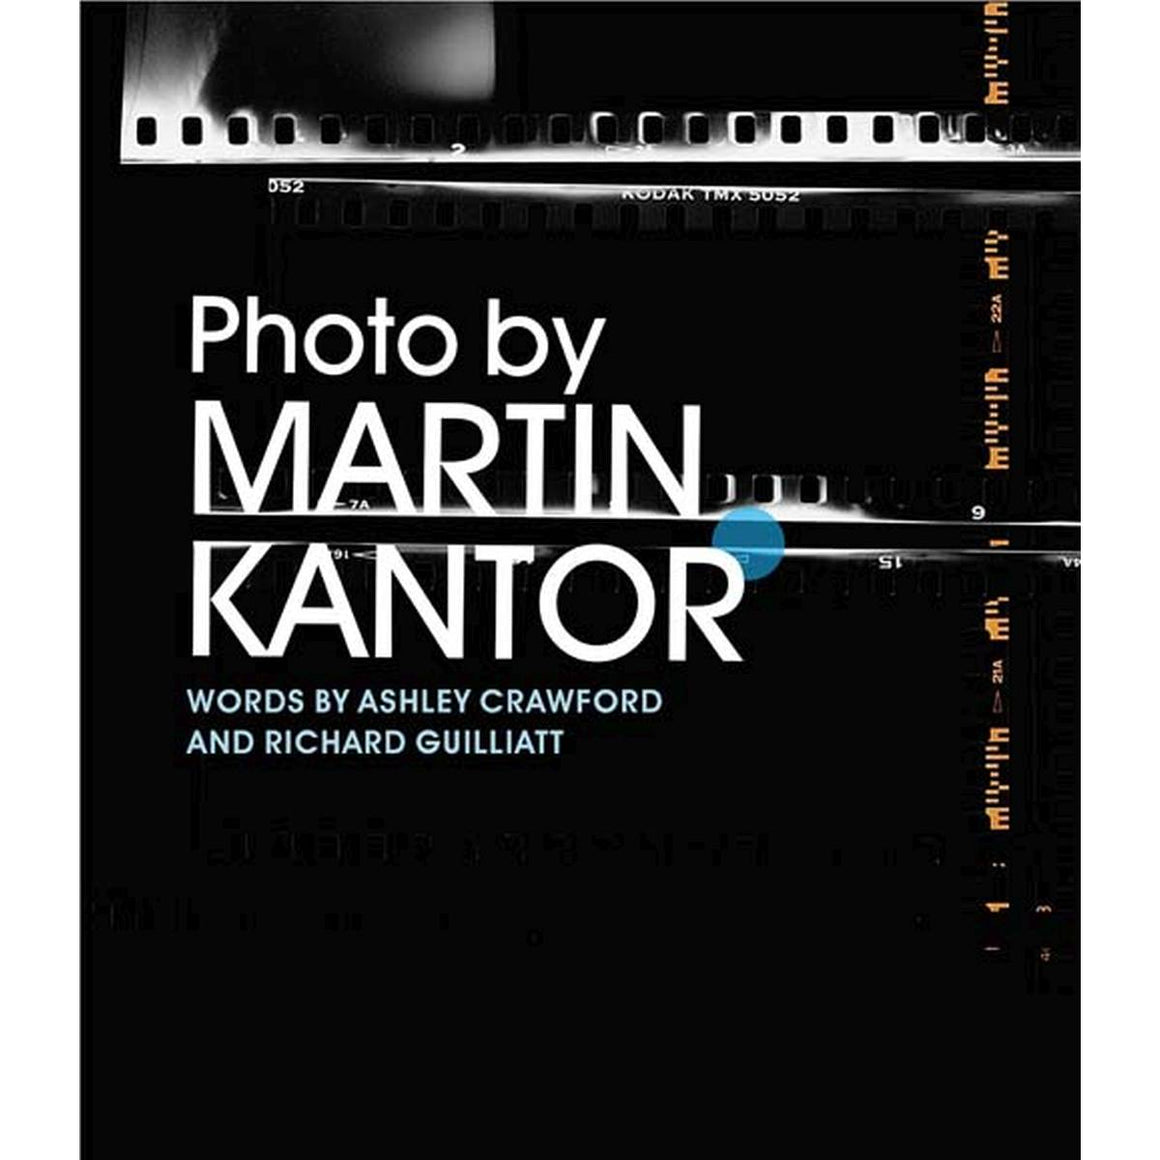 "A book cover with cover black and white photo of traditional photographic film negatives close up. Cover text reads "" Photo by Martin Kantor. Words by Ashley Crawford and Richard Guilliatt"""